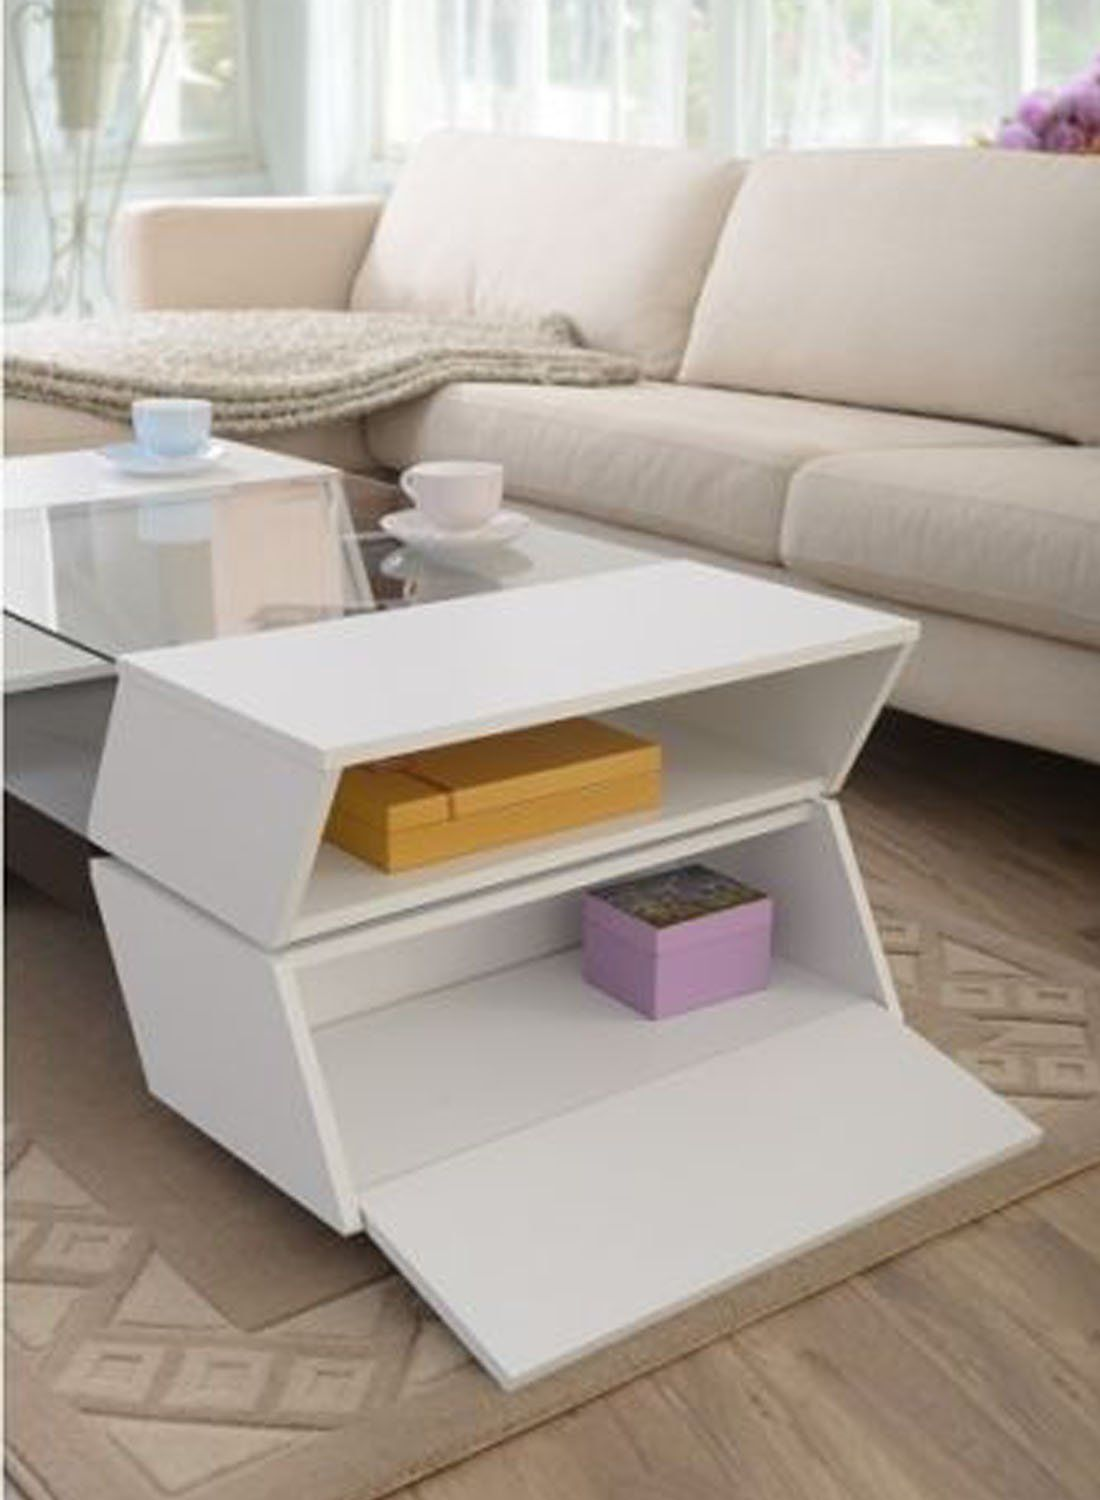 Youzee Coffee Table Tables With Storage Glass Living White Wood Room Modern Furniture White Check Out The Image By Modern Sofa Table Coffee Table Furniture [ 1500 x 1100 Pixel ]